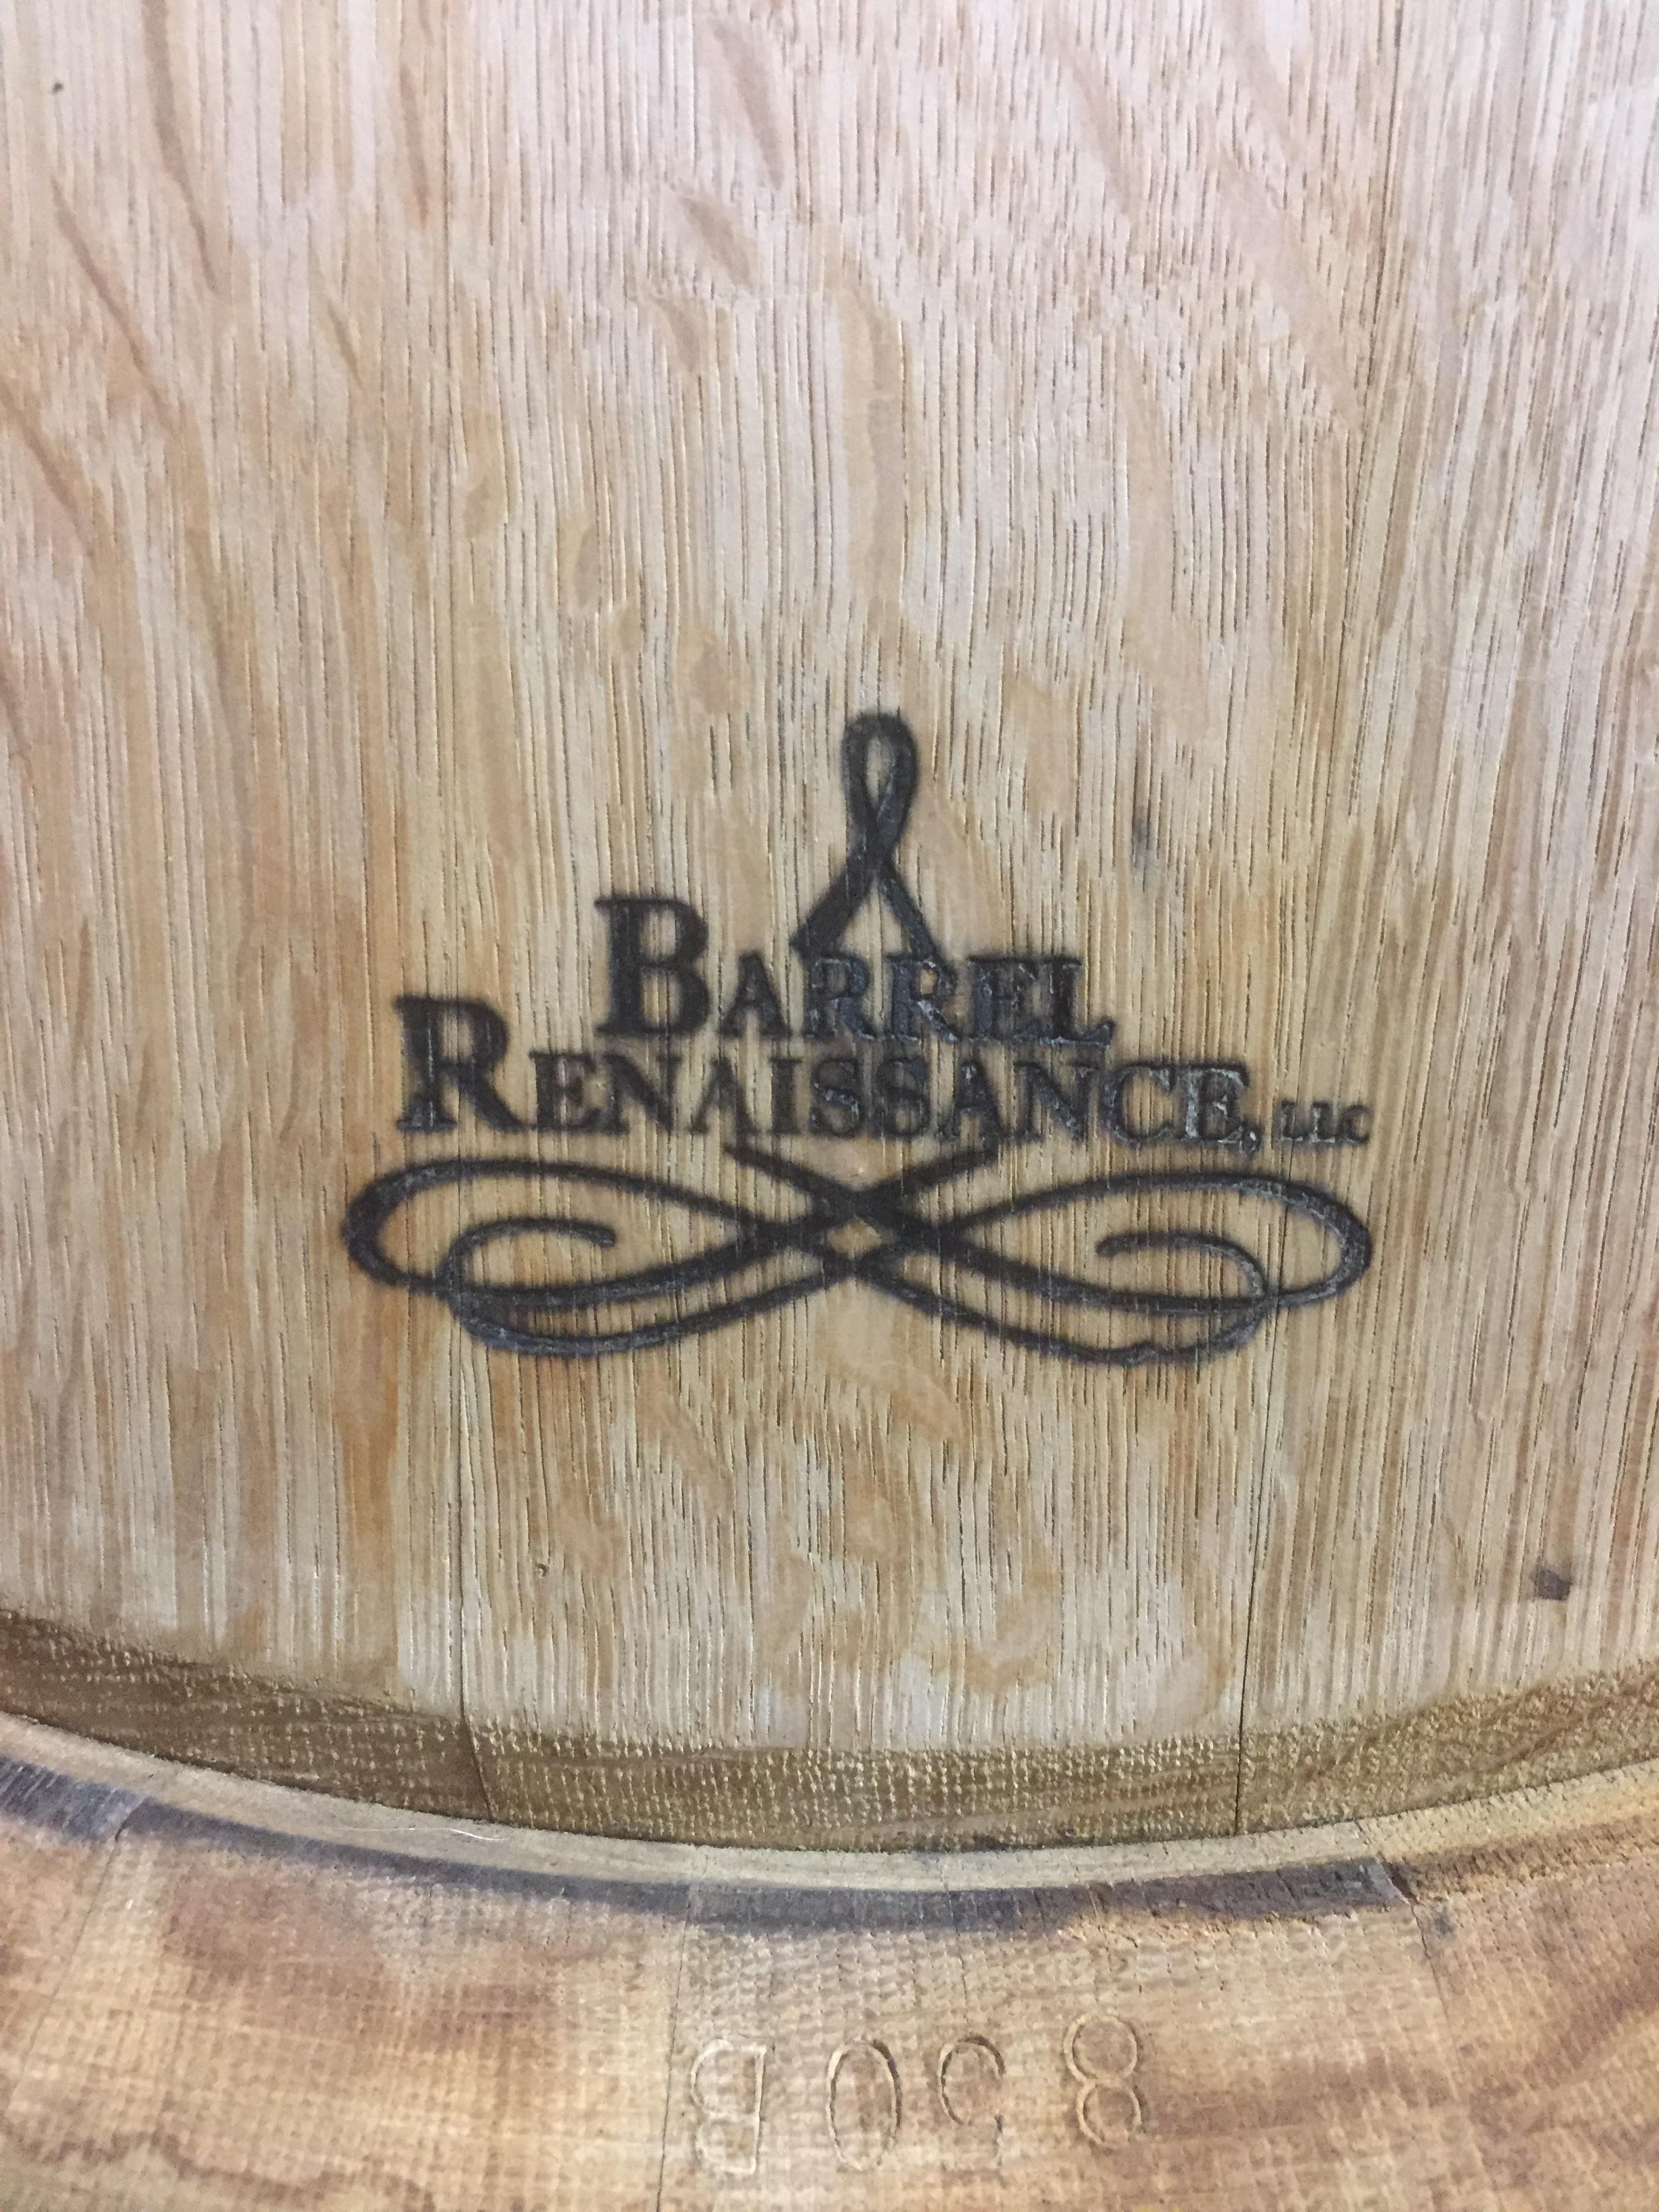 This company refinishes the insides of barrels so you can get more use out of them!